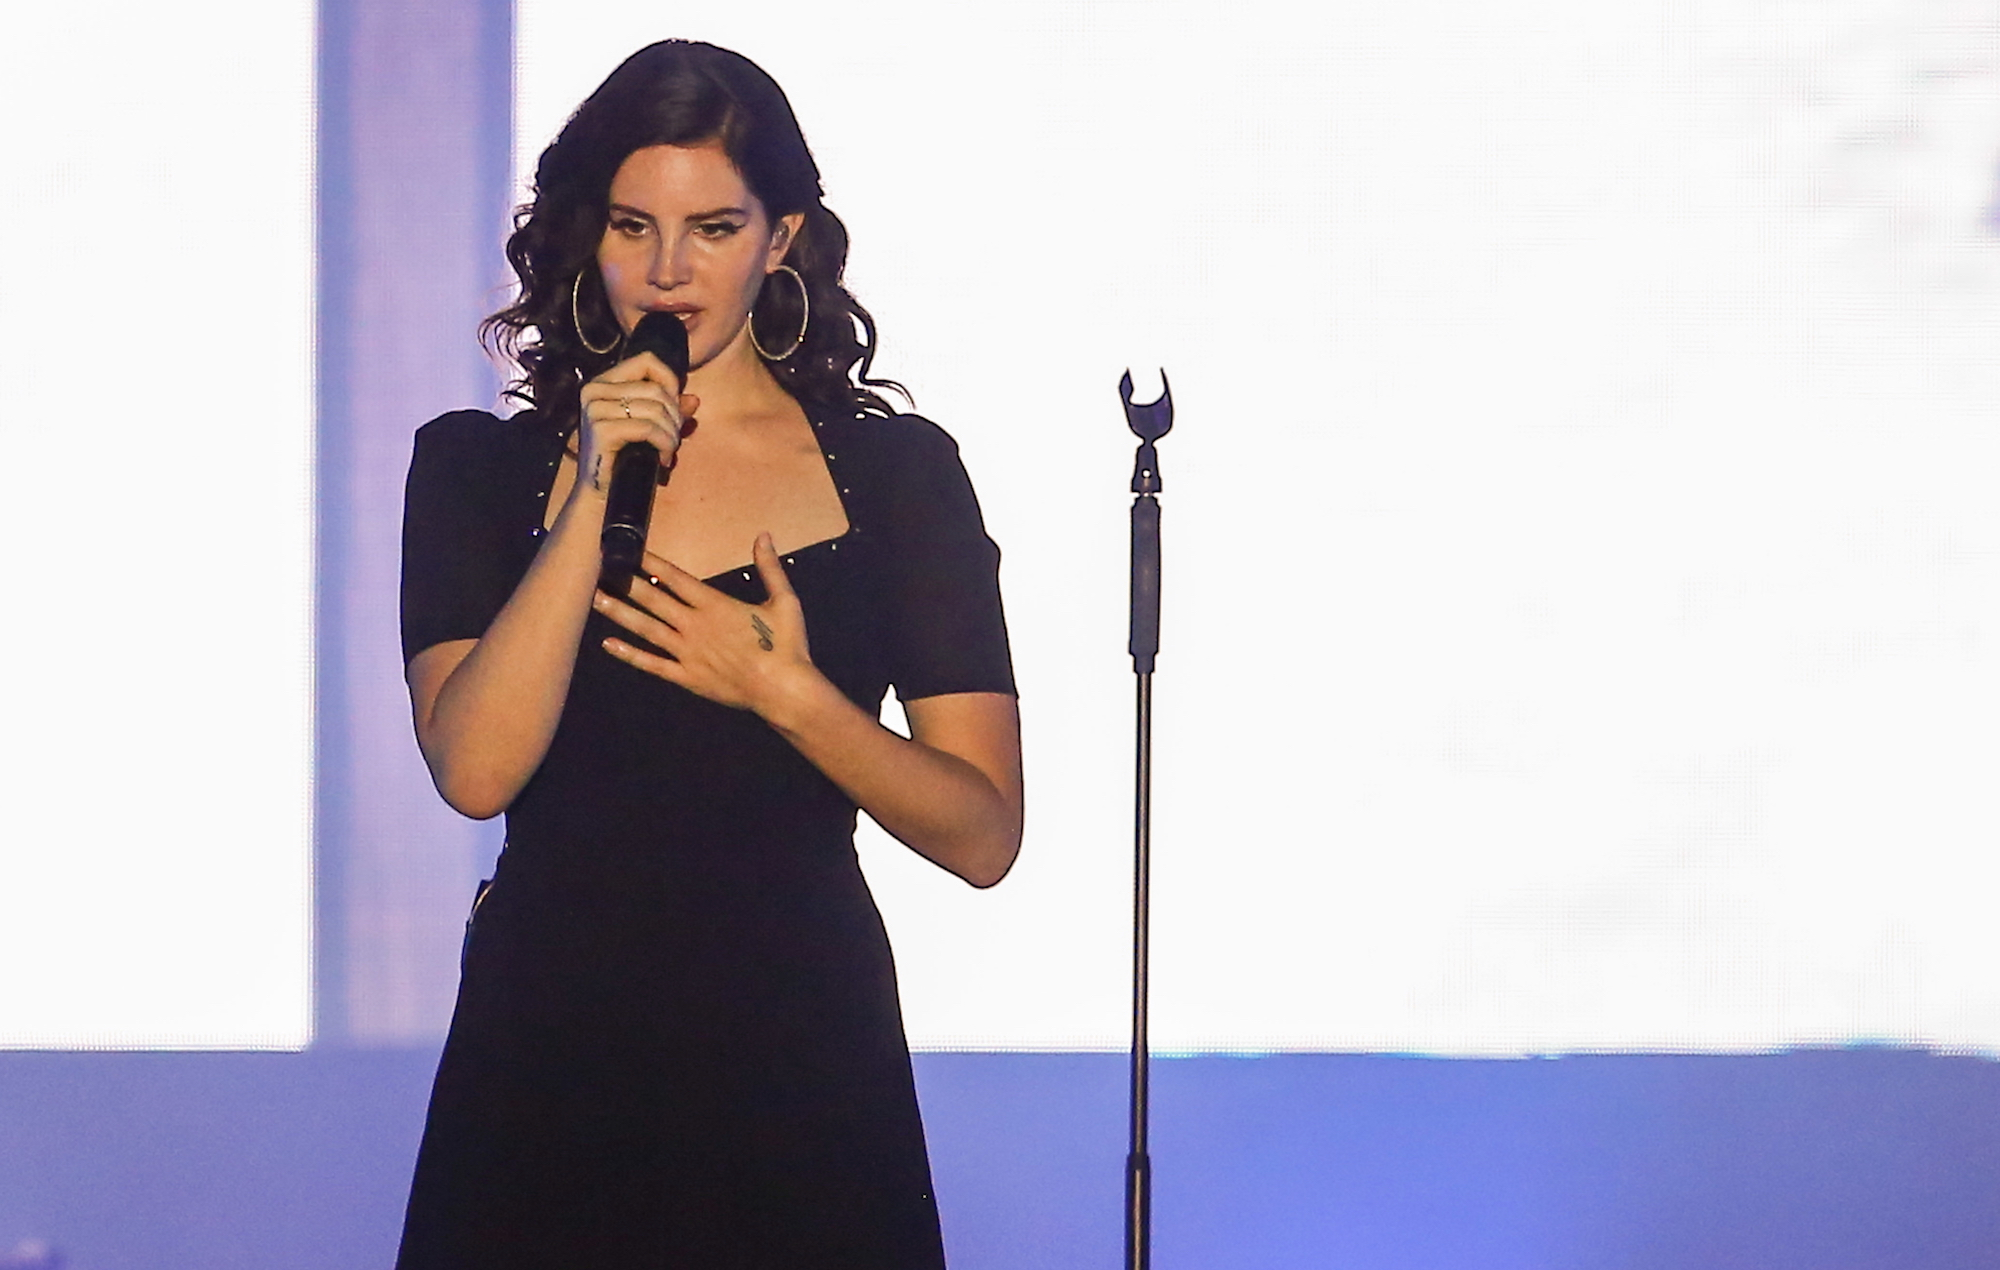 Hear 'Looking For America', Lana Del Rey's song about the US shootings